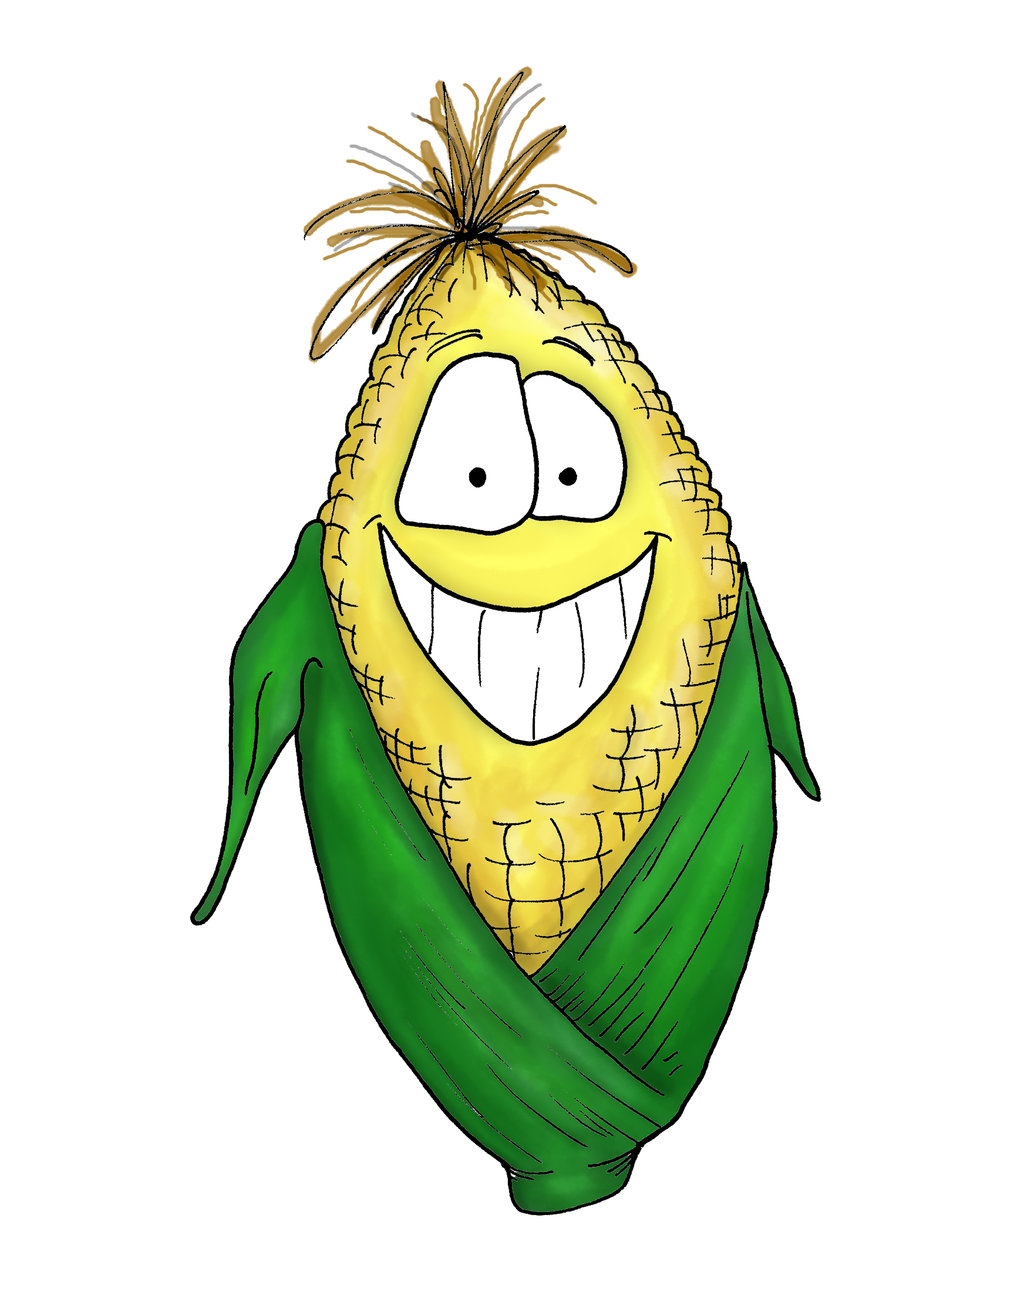 Corn Coloring Pages Printable - Free Printable Kids Coloring Pages